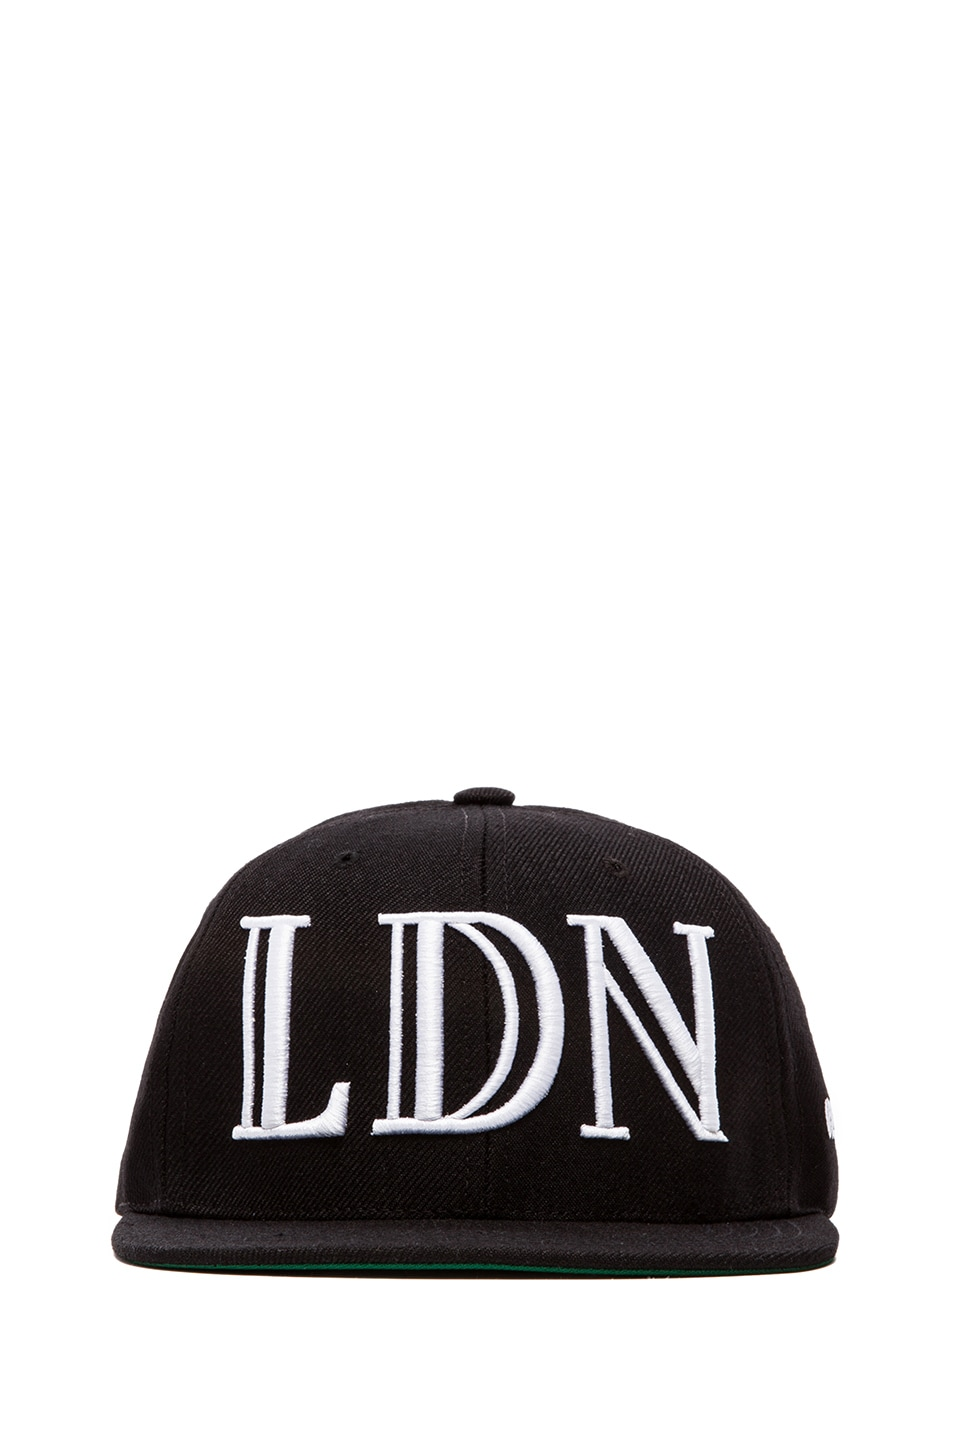 40 OZ NY Trapstar LDN Snapback in Black